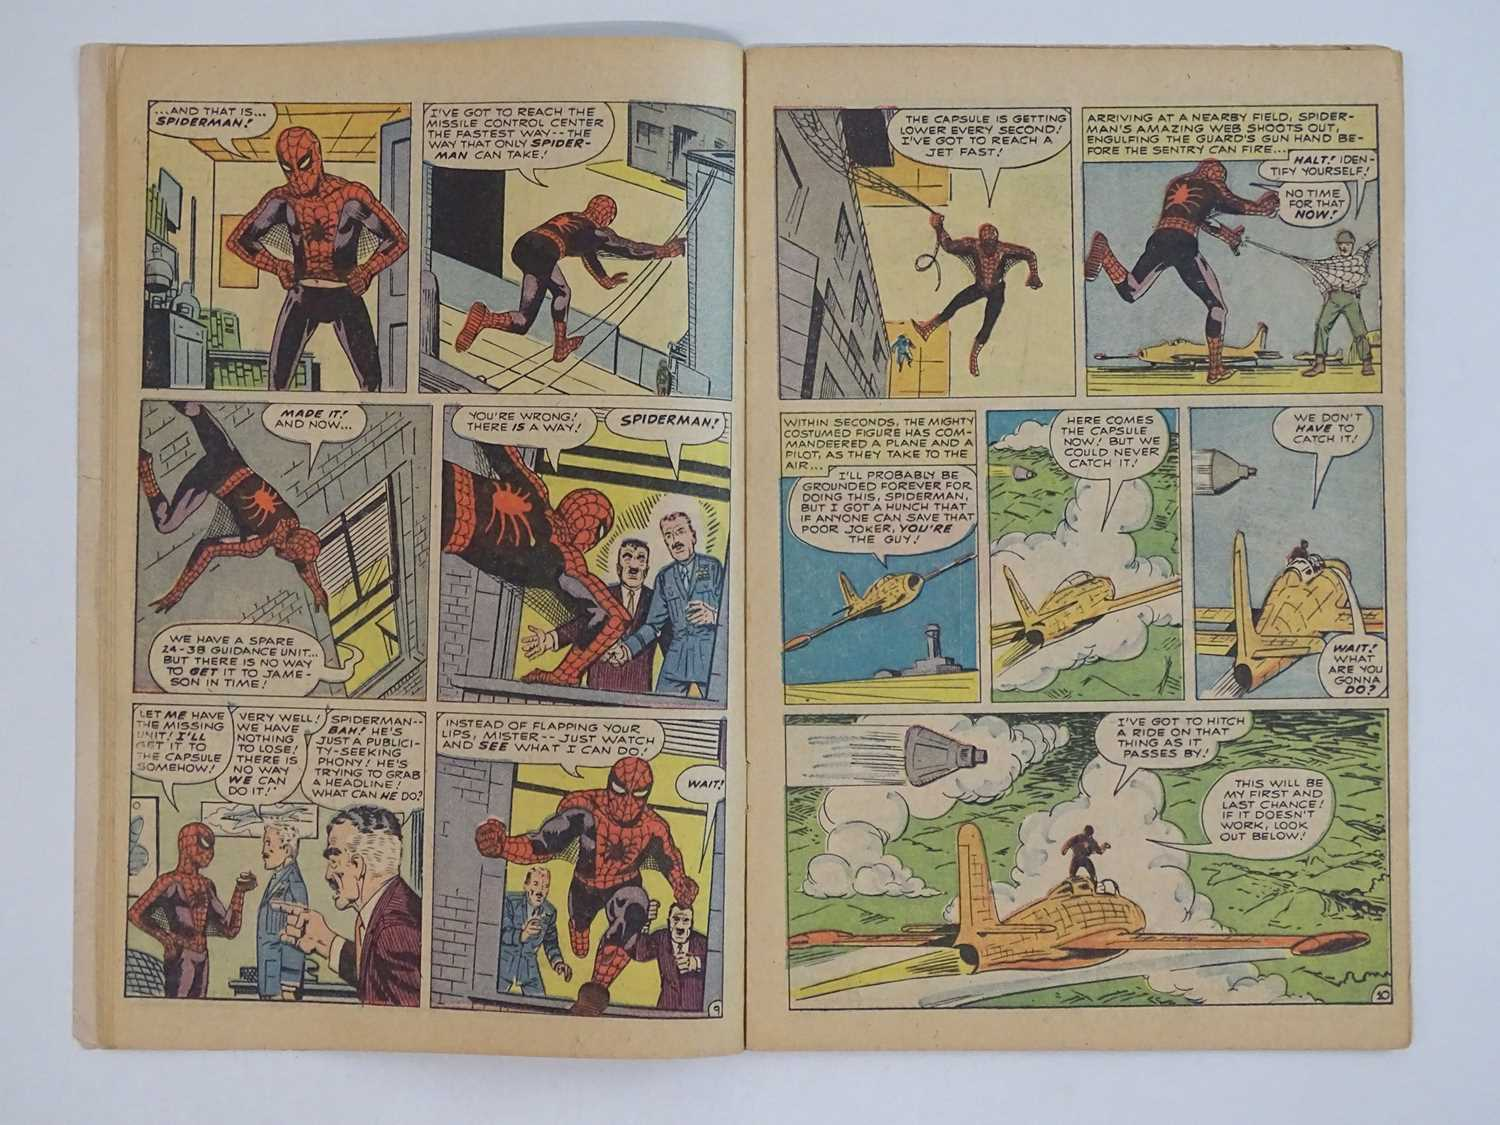 AMAZING SPIDER-MAN #1 - (1963 - MARVEL - UK Price Variant) - First appearance of Spider-Man un his - Image 14 of 27